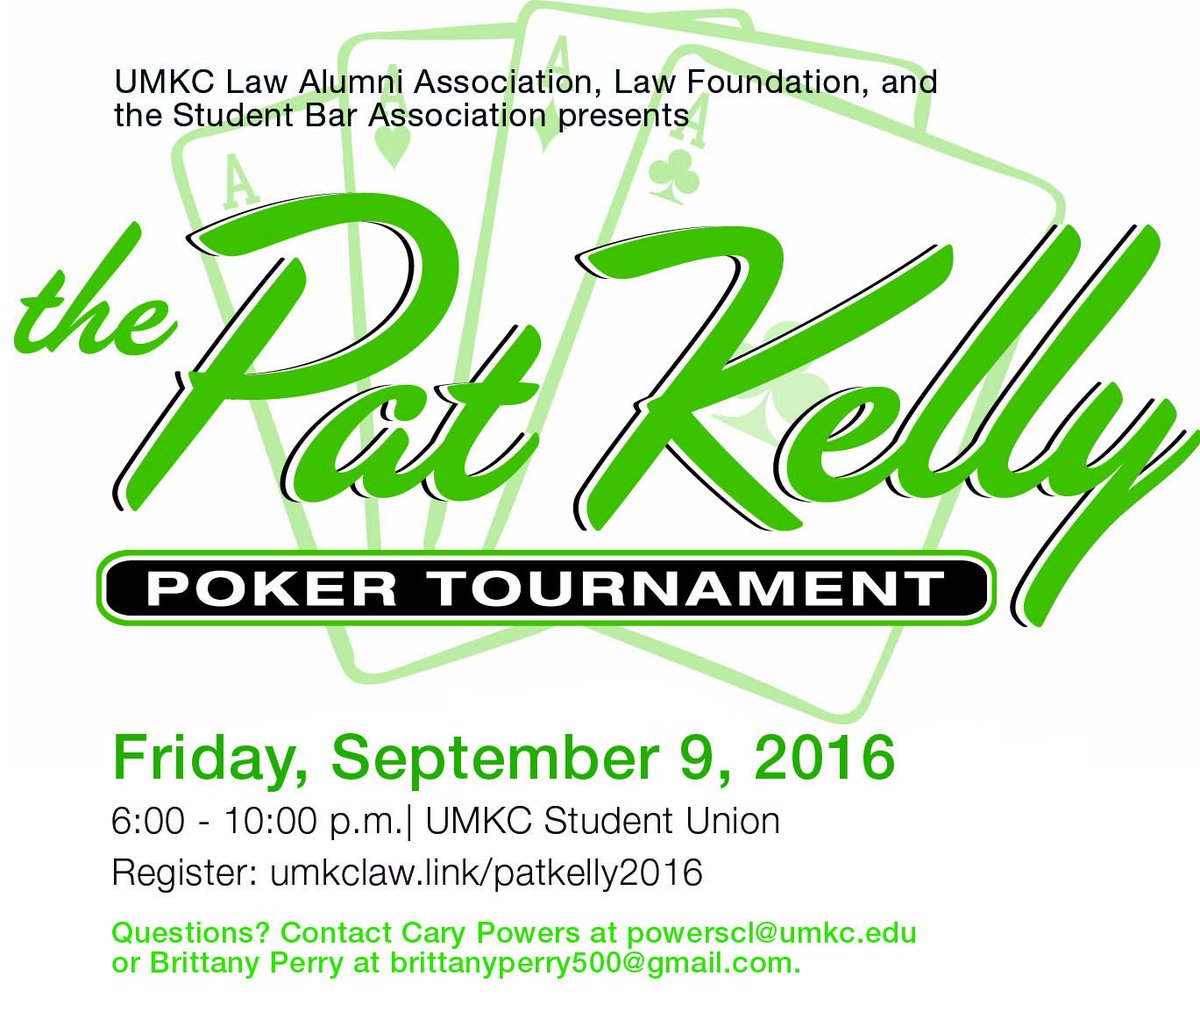 Student poker tournament : Casino risk assessment